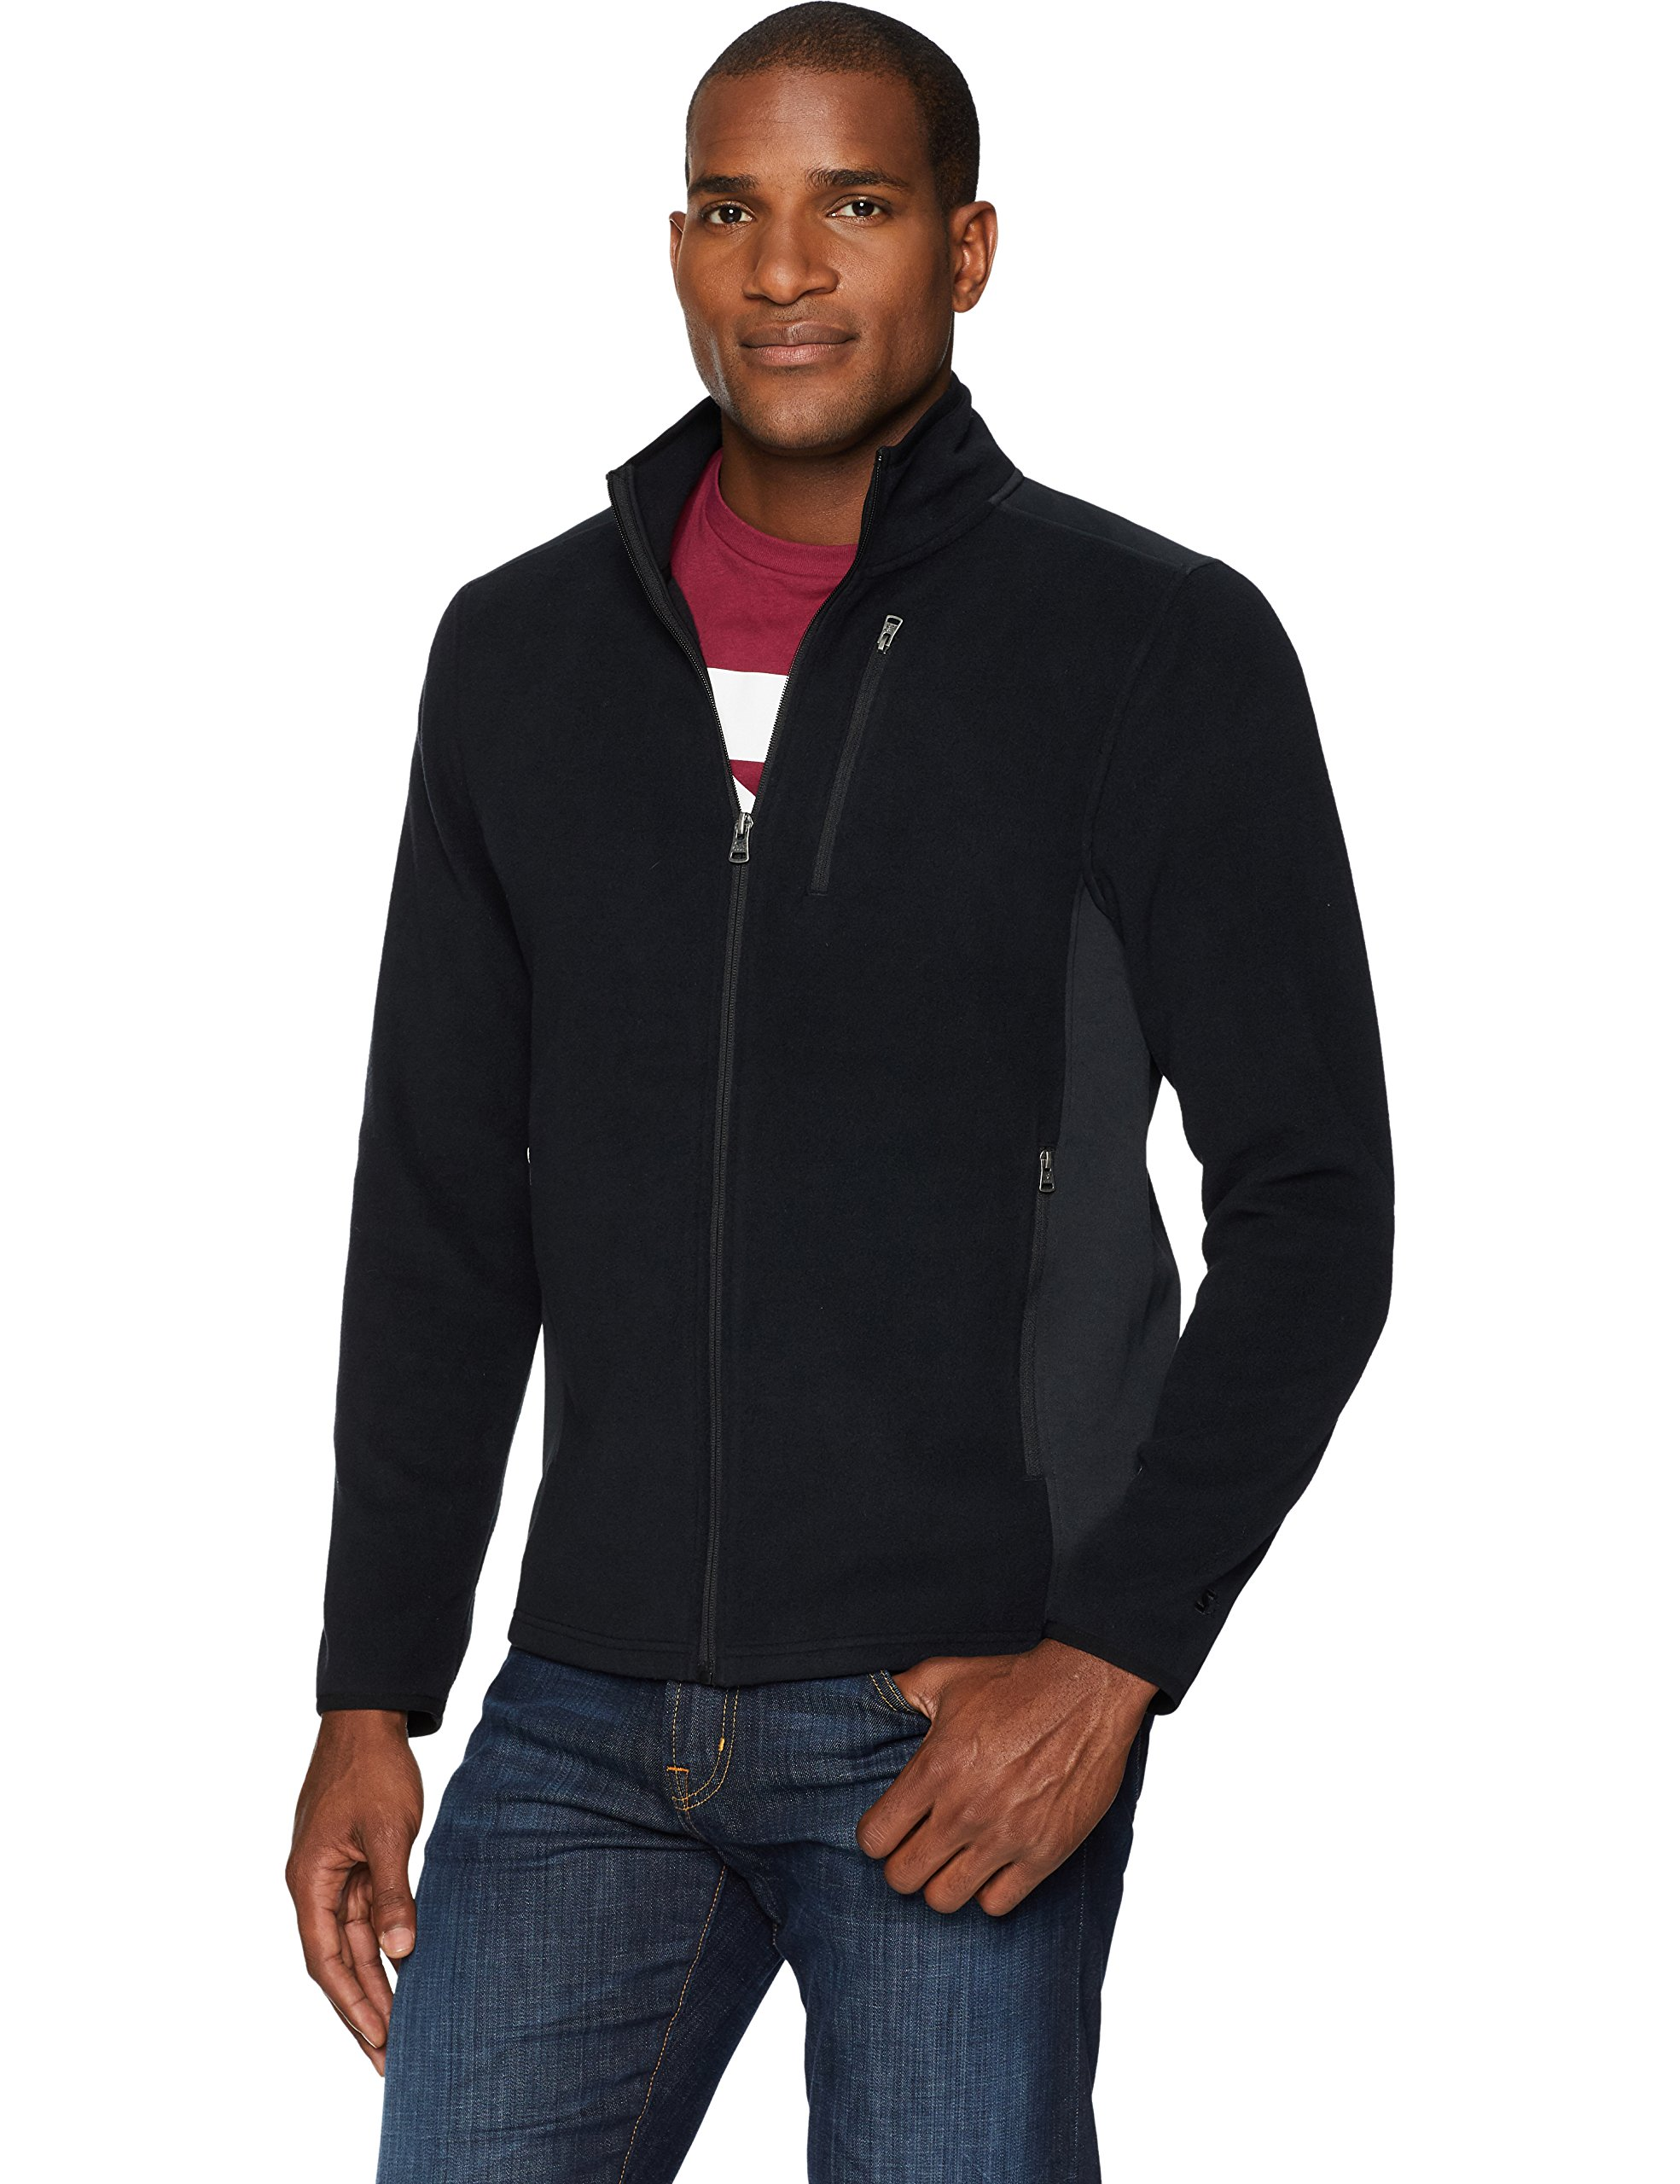 Starter Men's Polar Fleece Jacket, Amazon Exclusive, Black, Extra Large by Starter